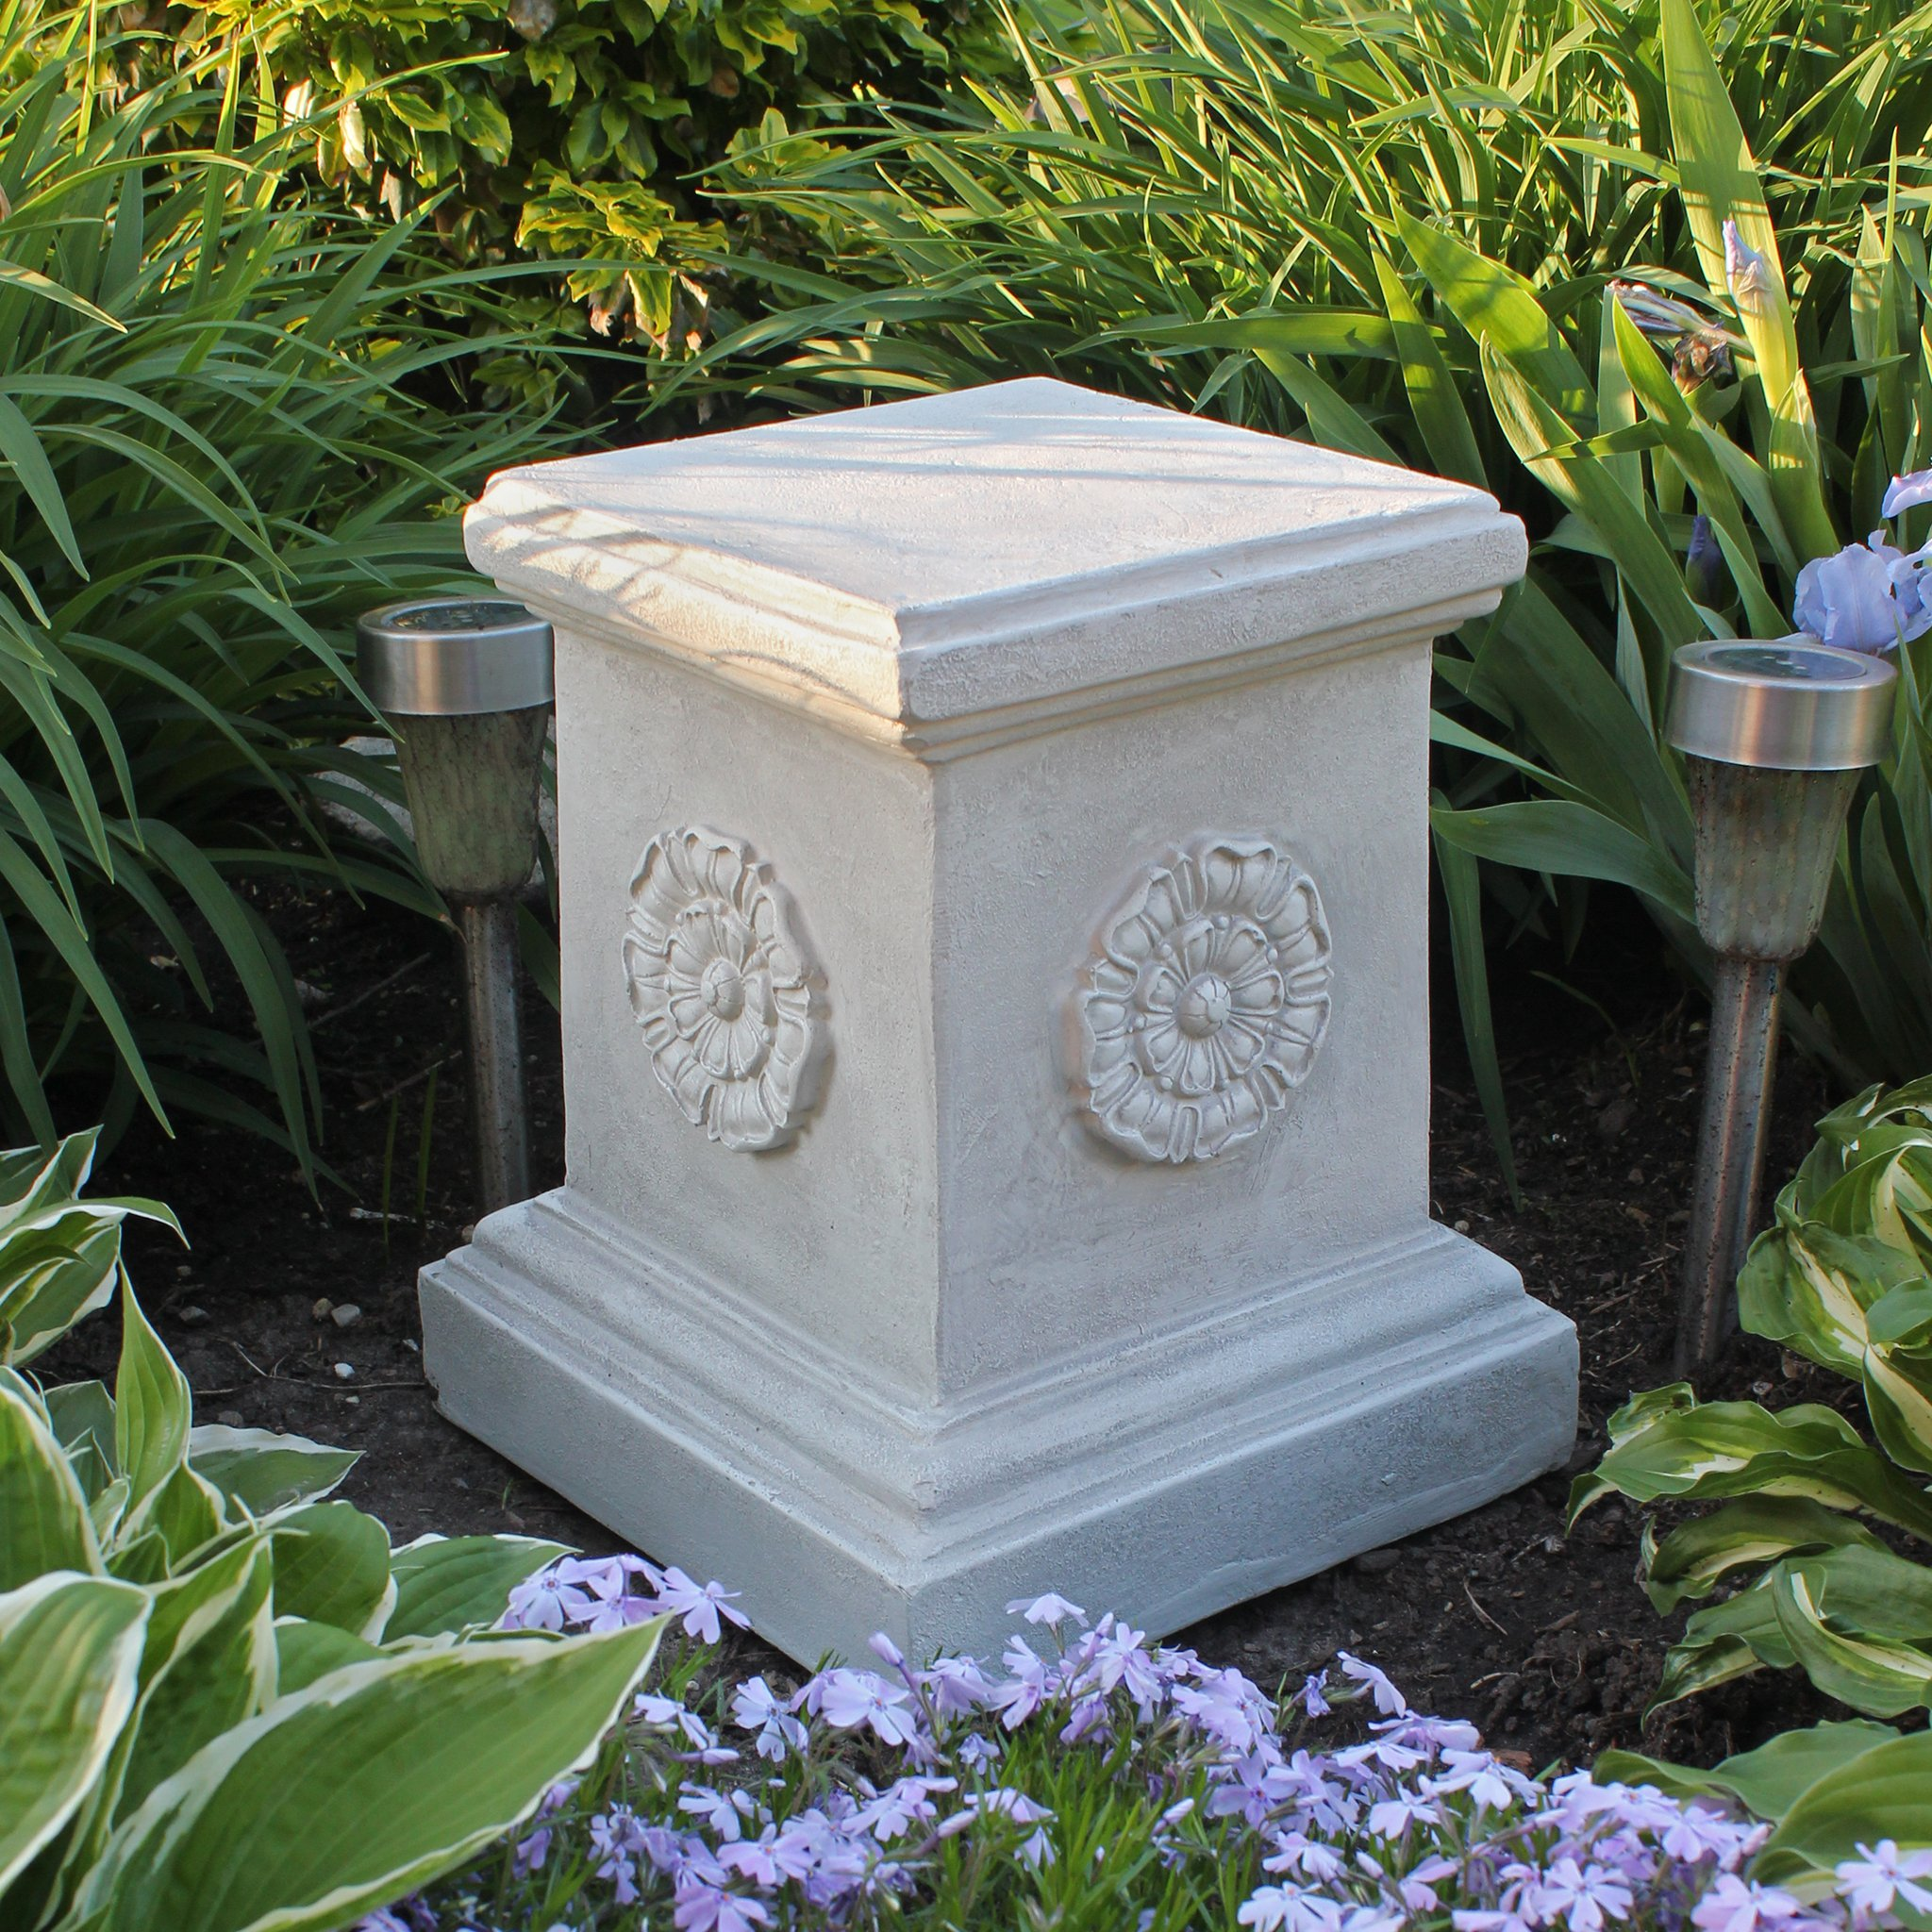 Design Toscano English Rosette Sculptural Garden Plinth Base Riser, Large 13 Inch, Polyresin, Antique Stone by Design Toscano (Image #5)